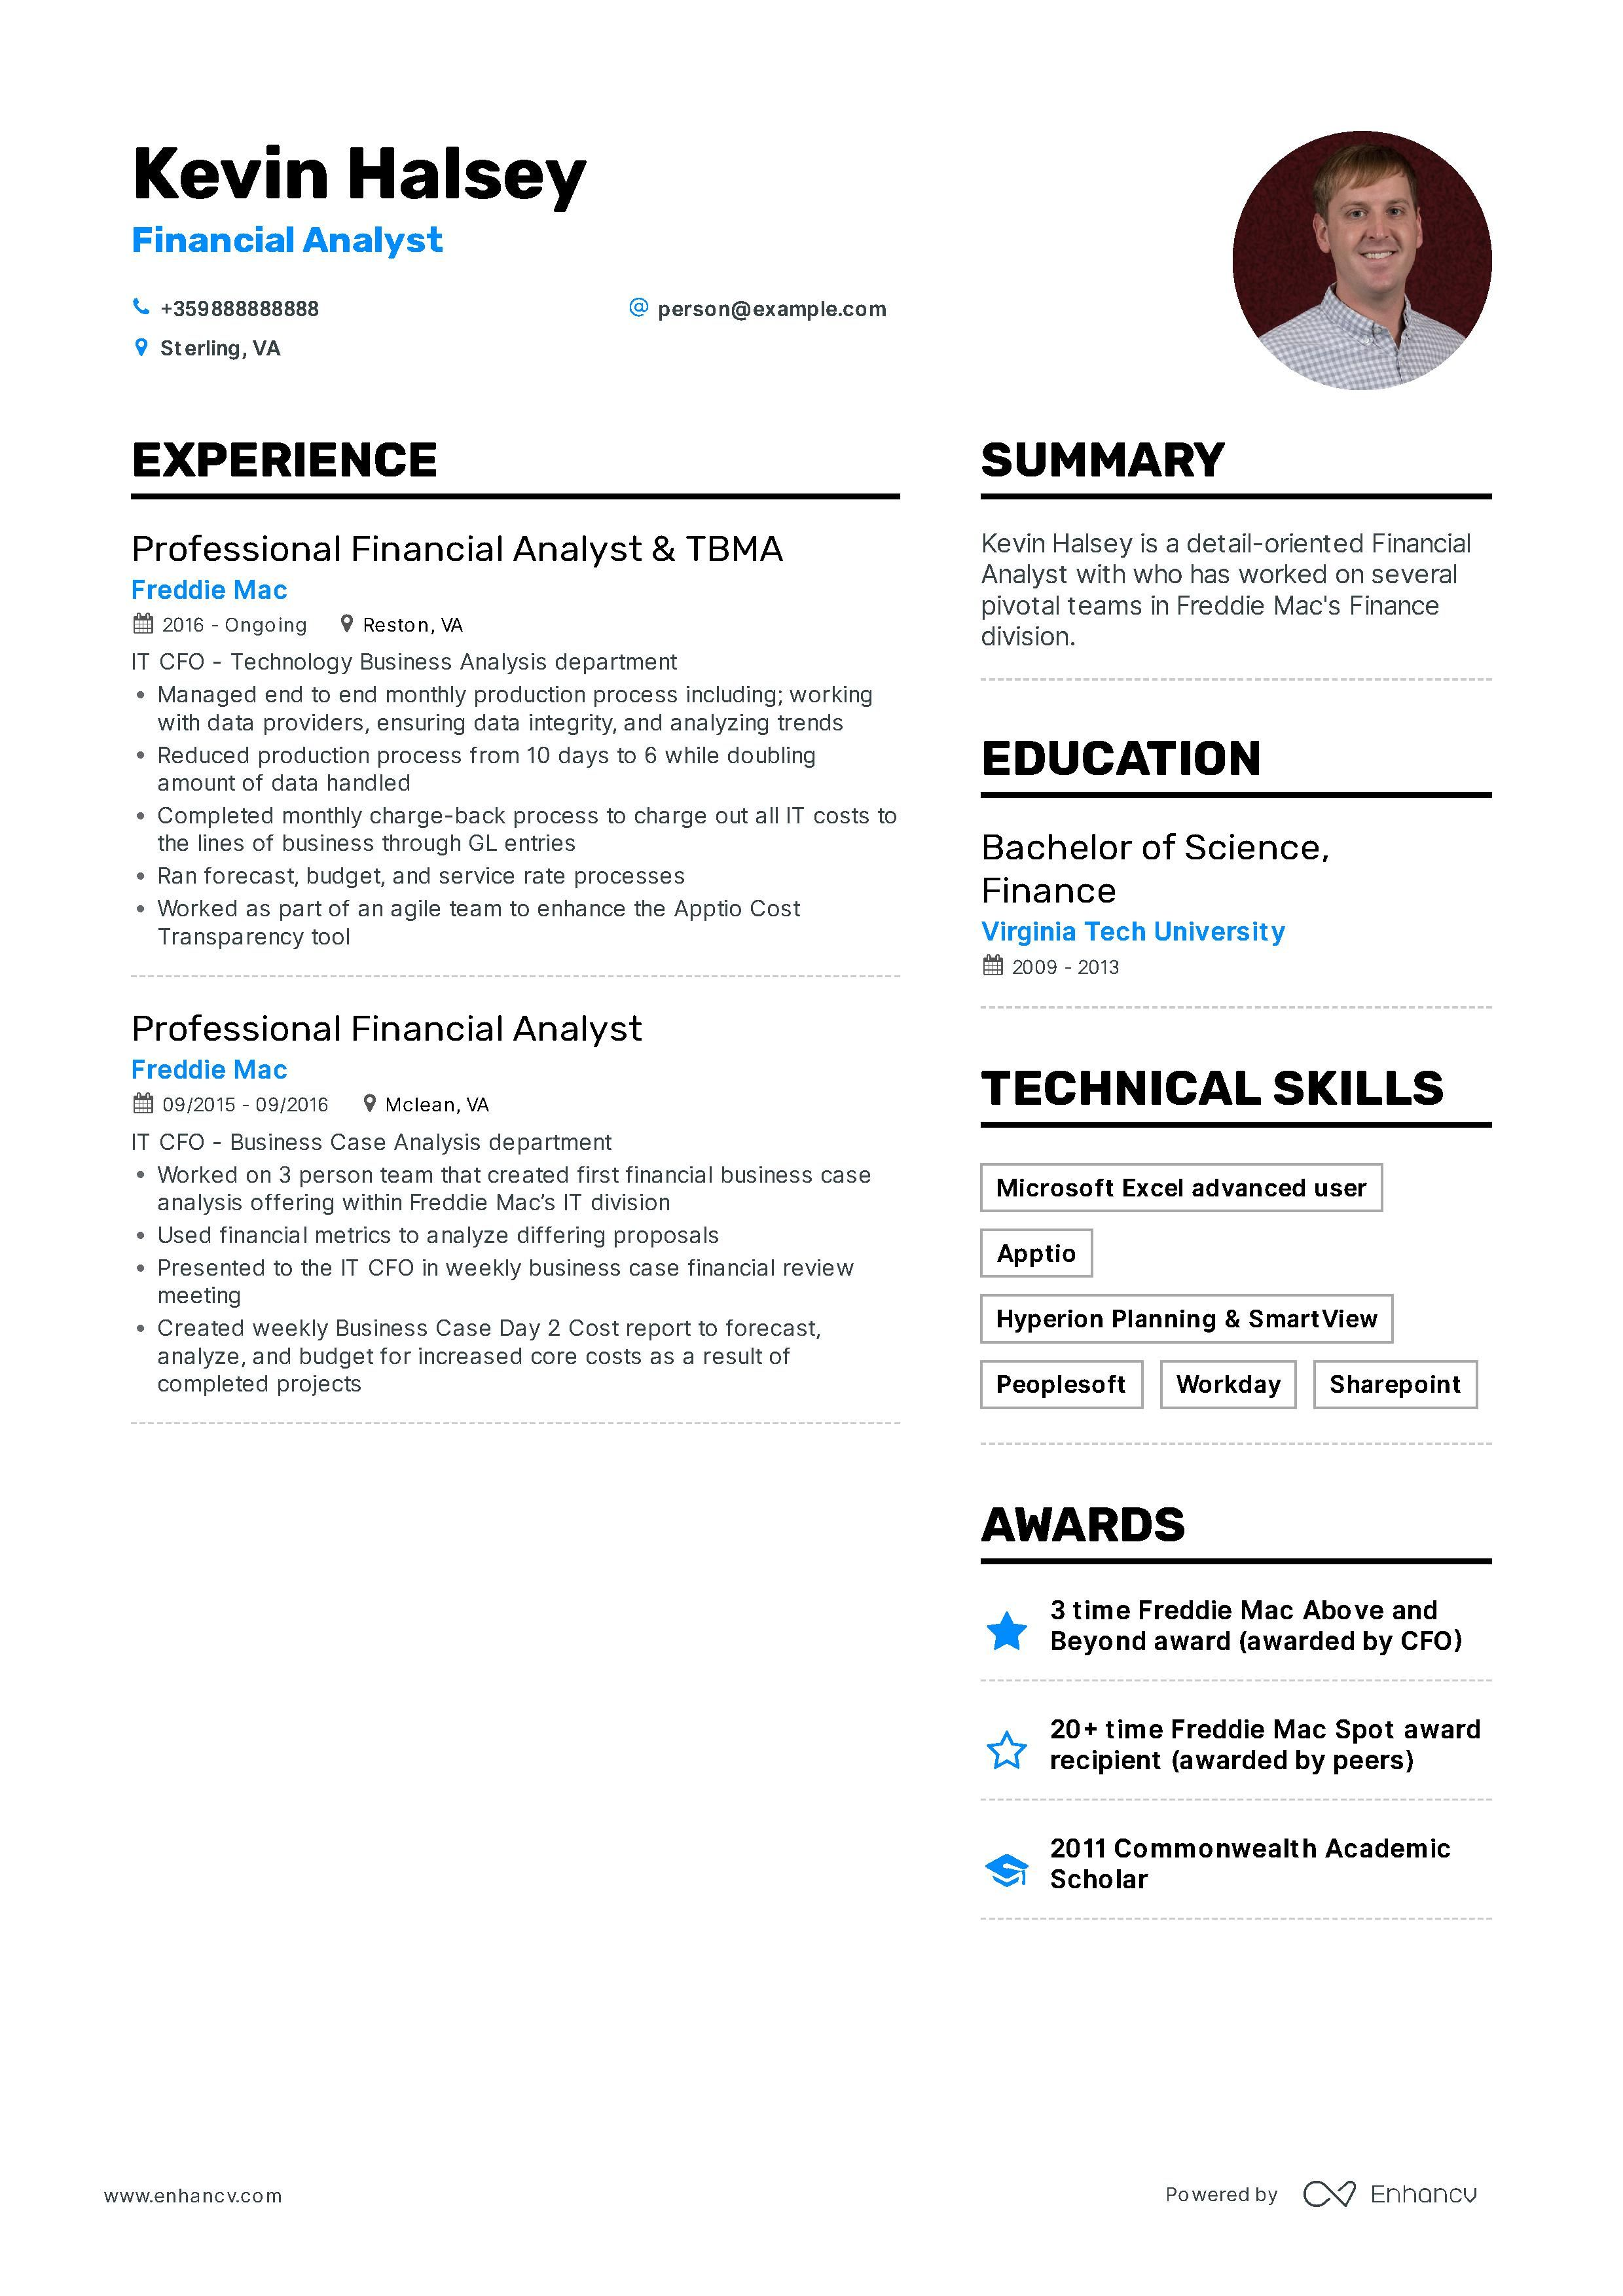 Download financial analyst resume example for 2020